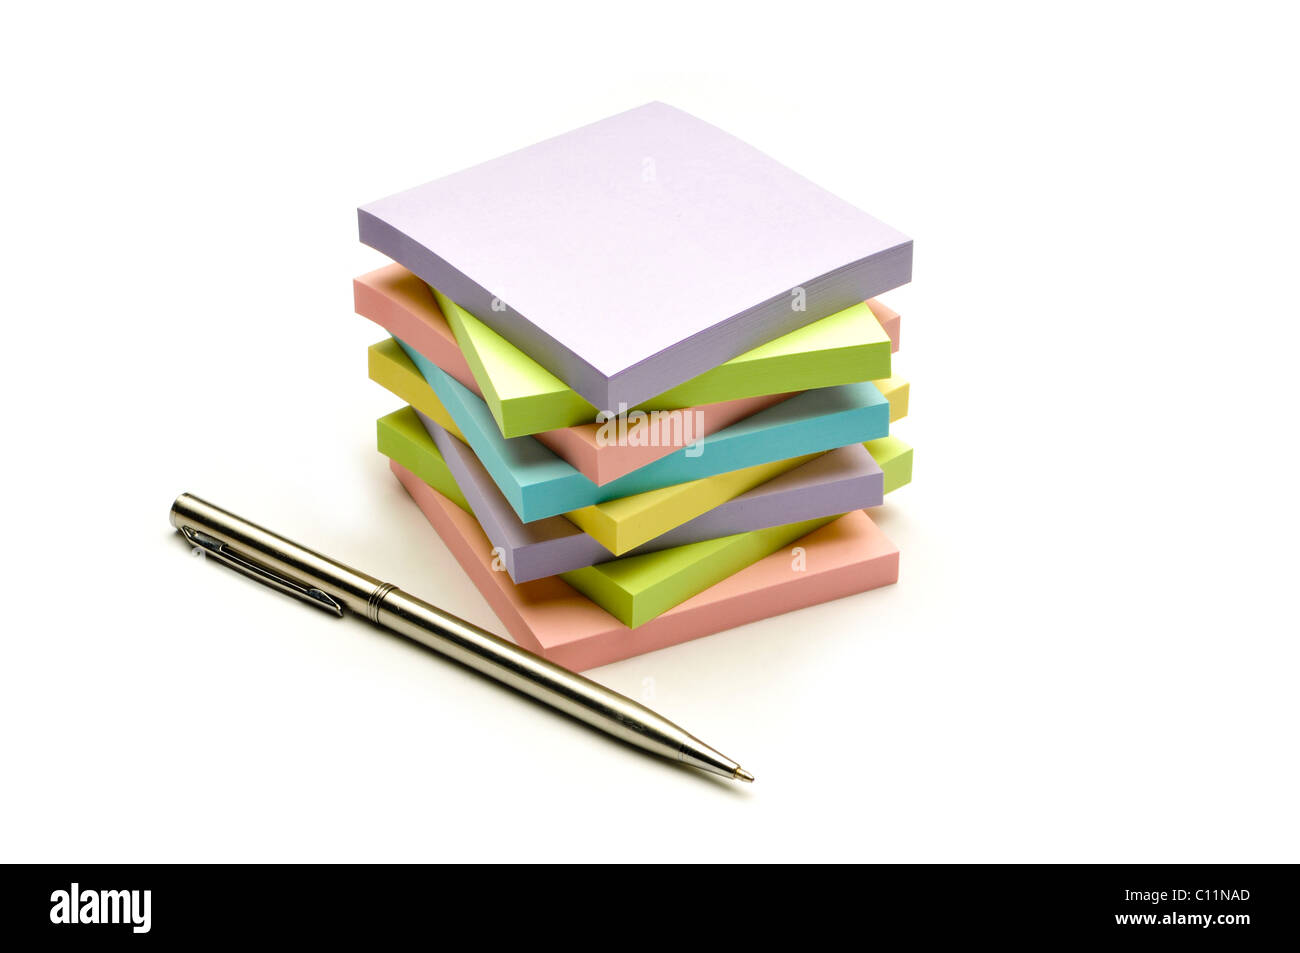 stack of colorful note papers - Stock Image